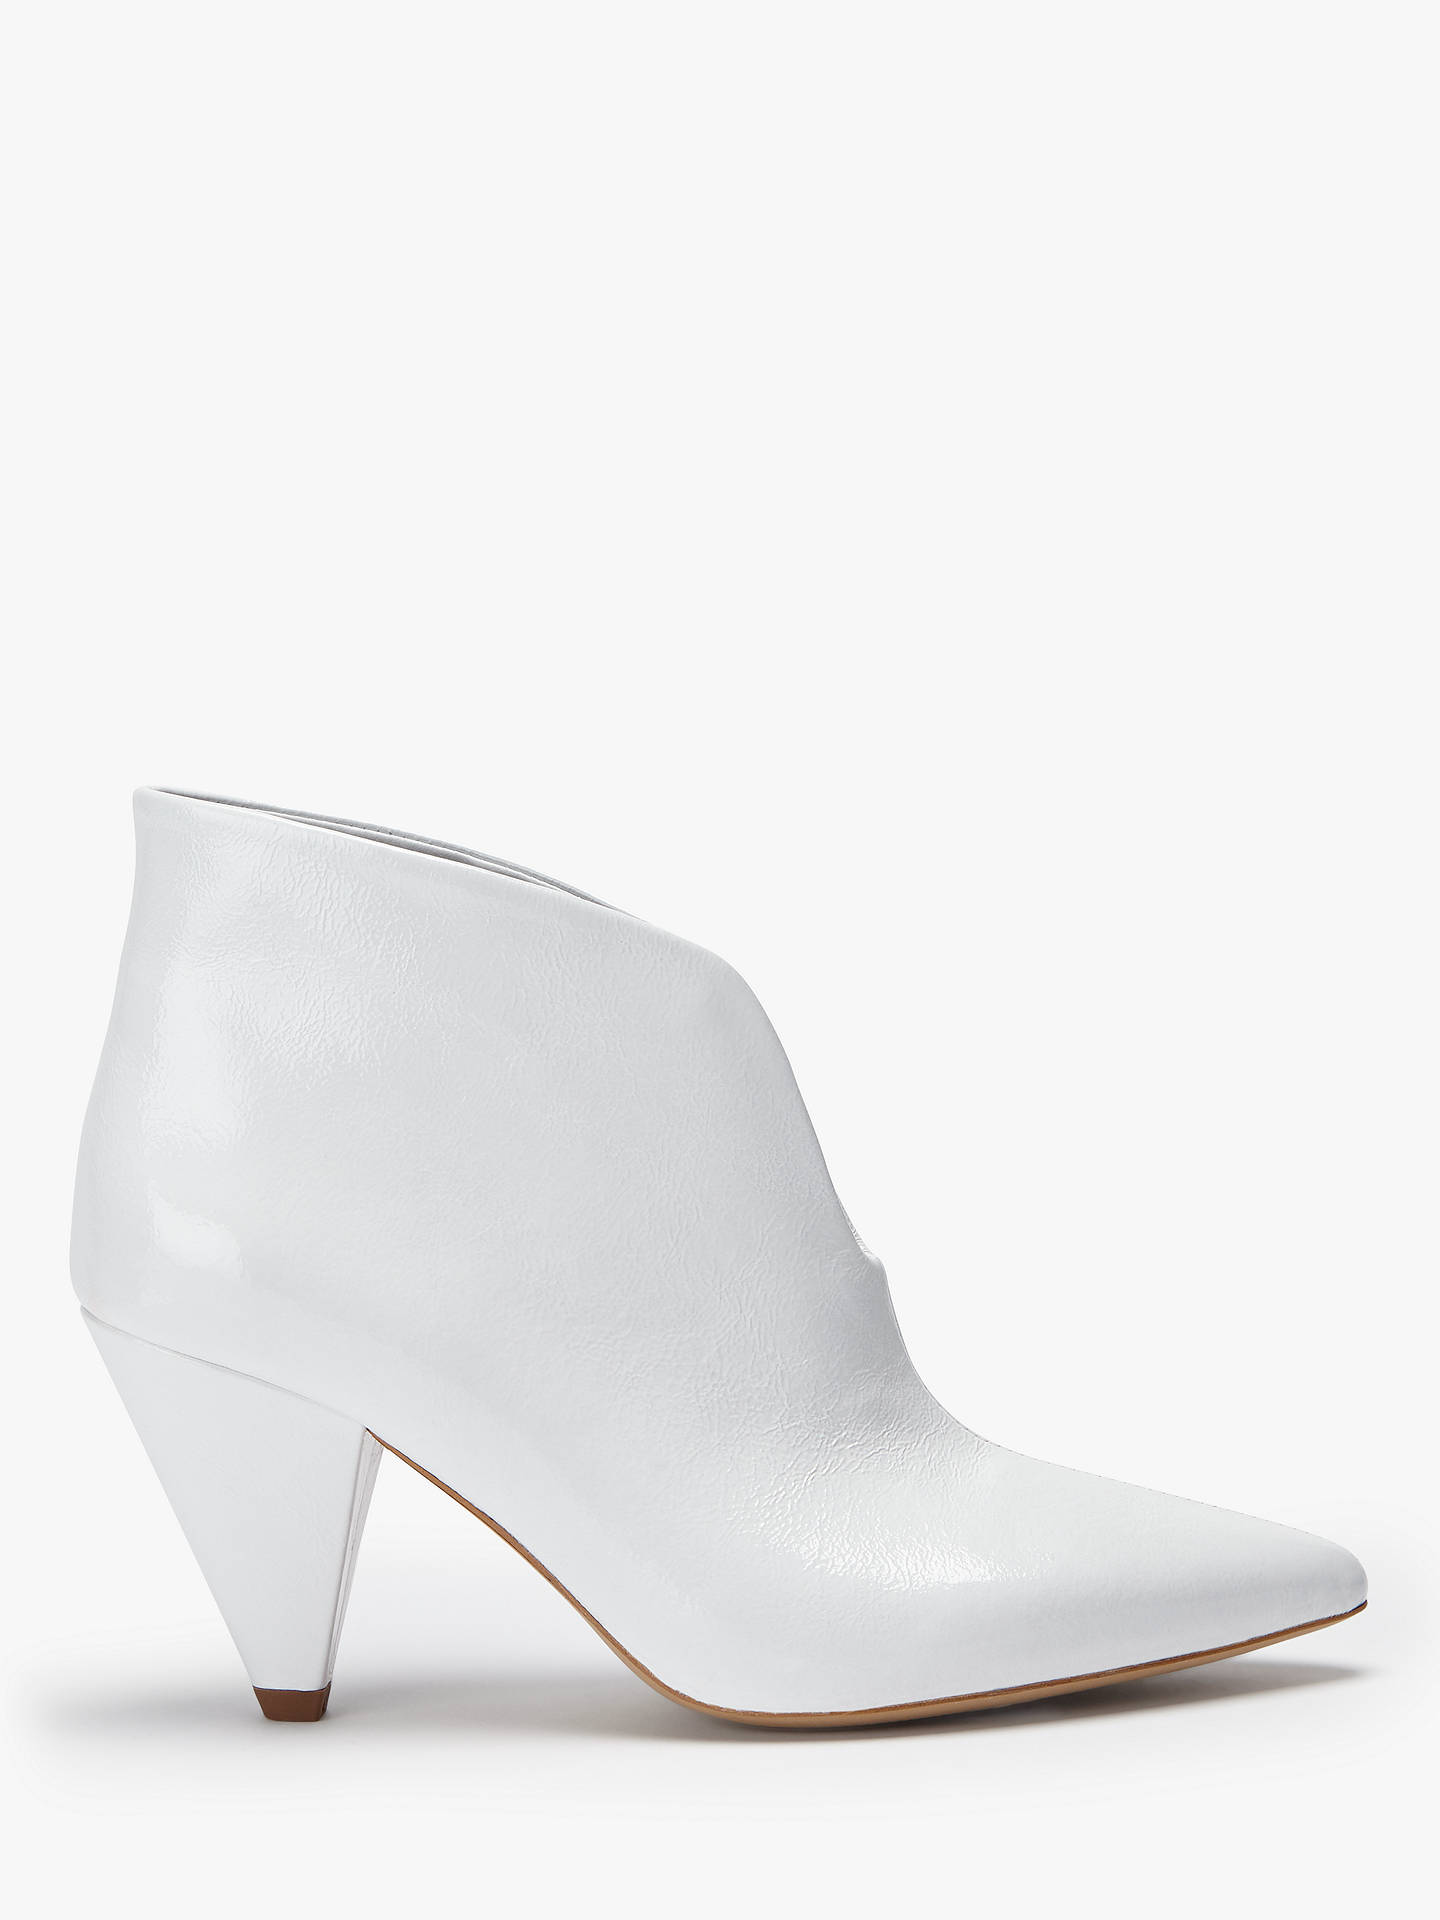 0a01fedd929 Kin Poppy Cone Heel Ankle Boots, White Patent Leather